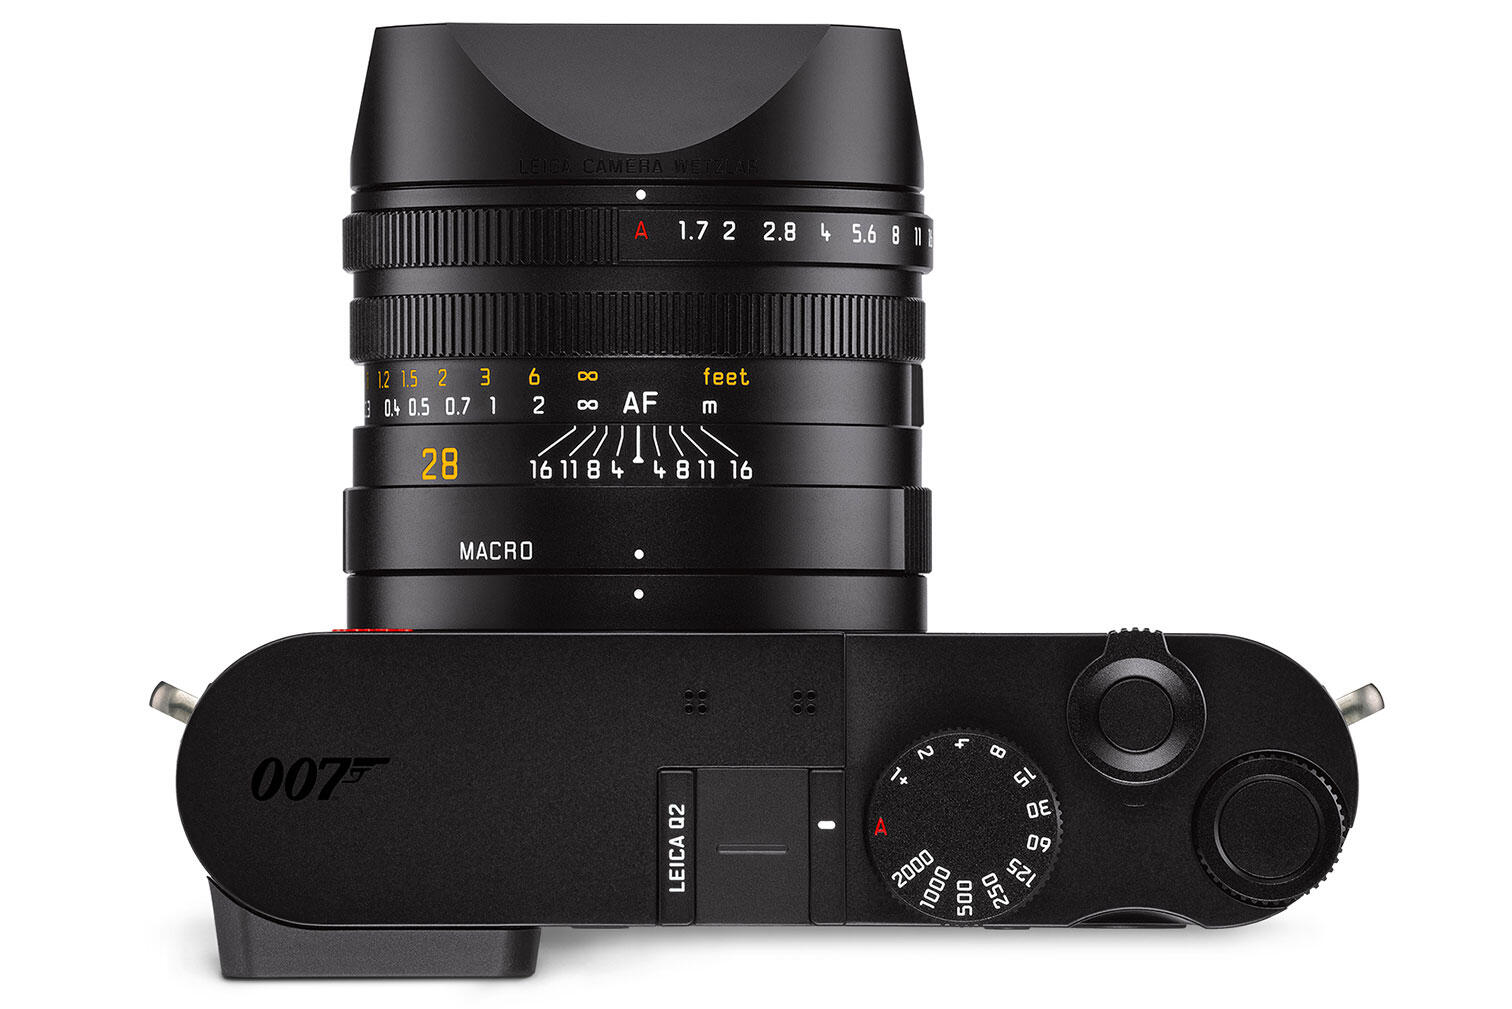 """Top of Leica Q2 """"007"""" edition"""